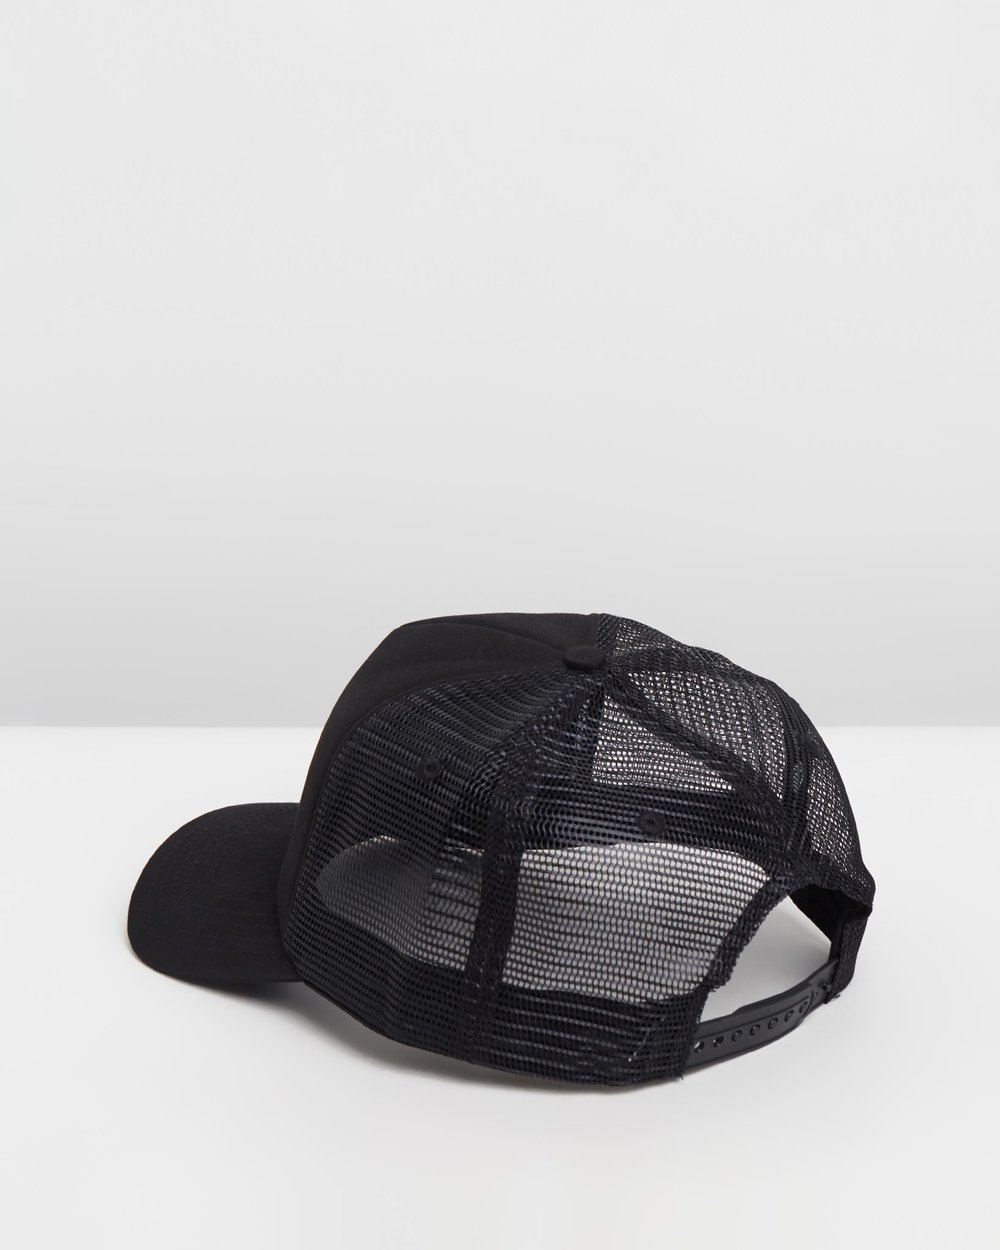 458c2340f3b H.S Colour Trucker Cap by Dickies Online